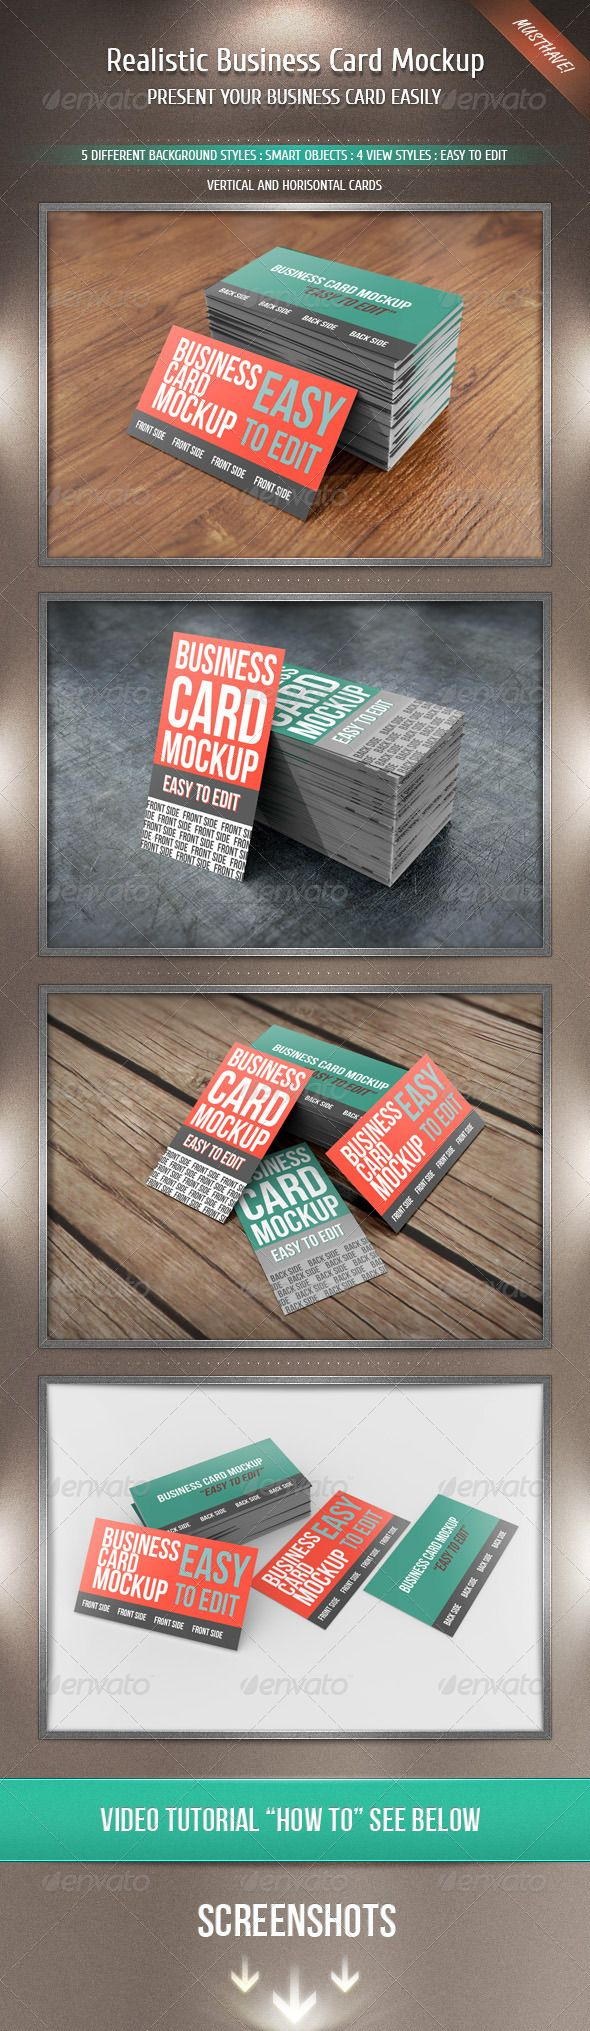 115 best busienss cards images on pinterest business card design realistic business card mockup reheart Choice Image